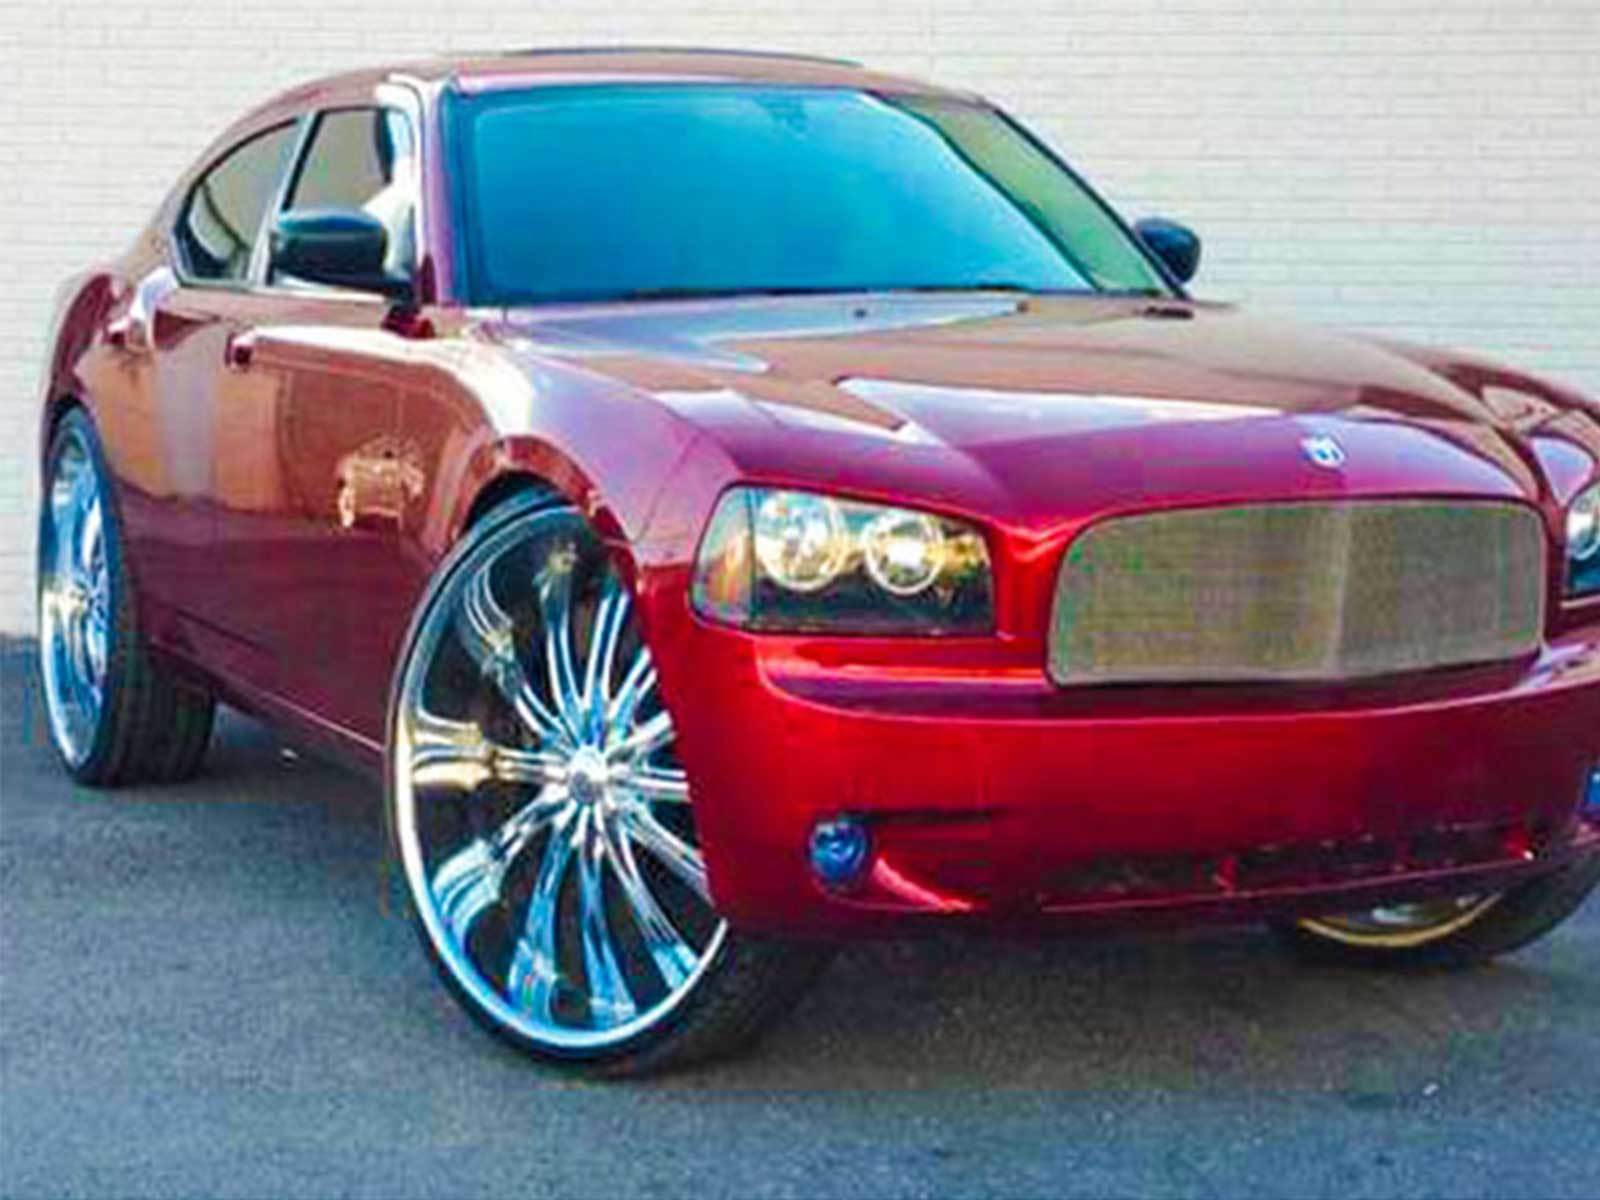 """2009 Dodge Charger 3 inch Lift Kit fit 22/"""" 24/"""" Rims check us Liftabrand.com"""